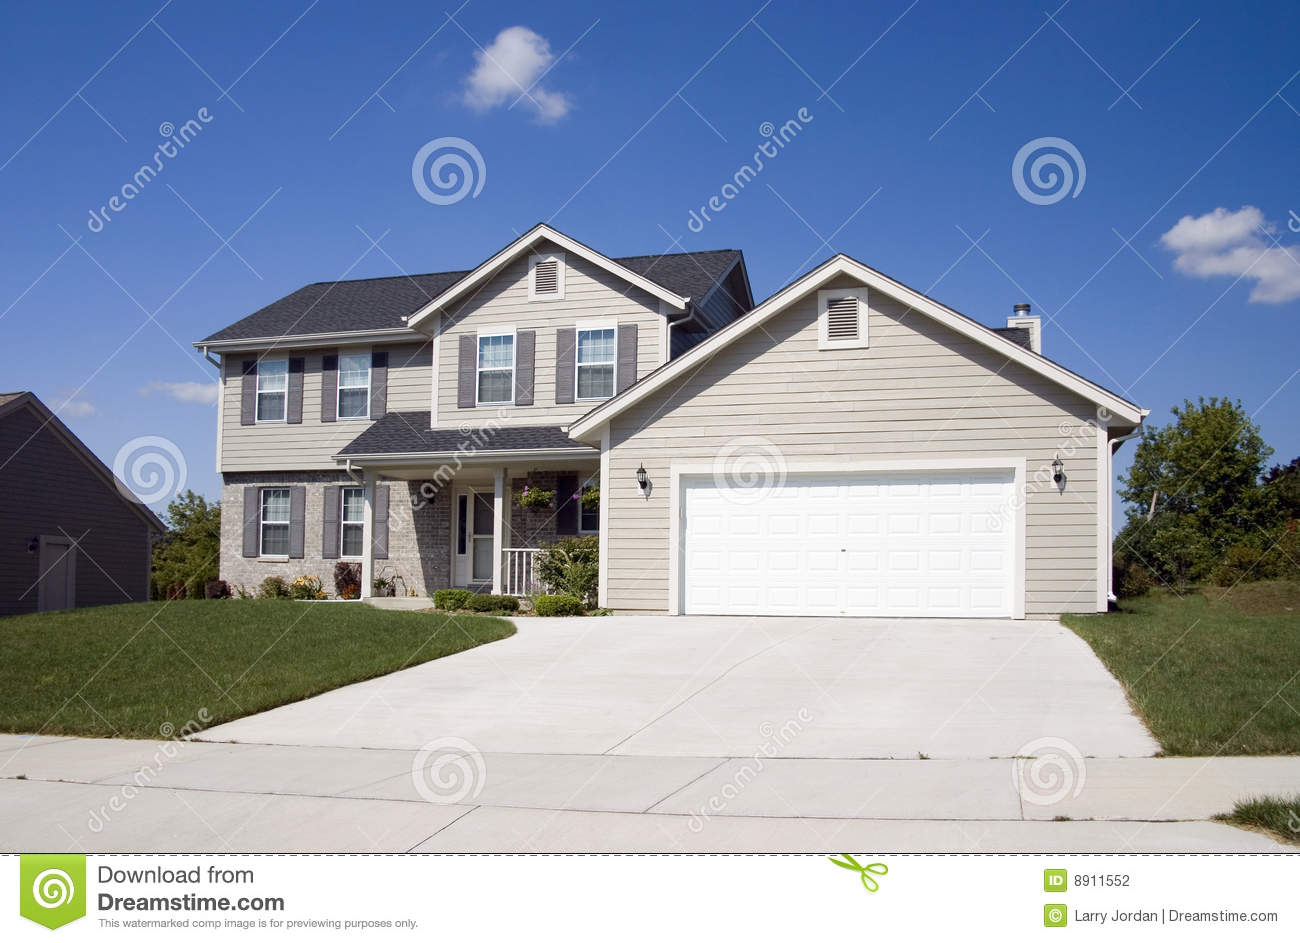 Modern Two Story Home Stock Photography Image 8911552: modern 2 story homes